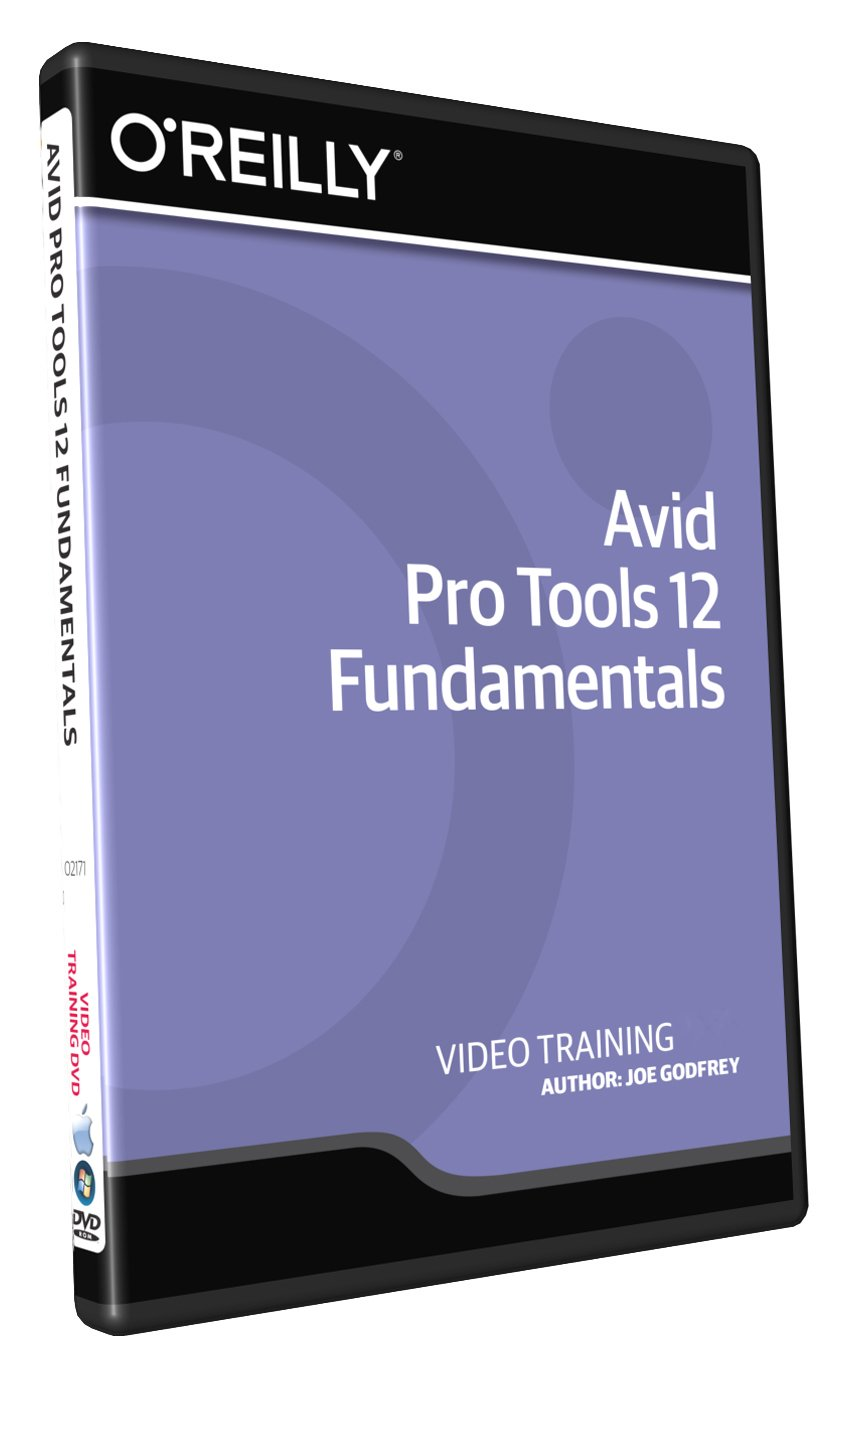 Avid Pro Tools 12 Fundamentals - Training DVD